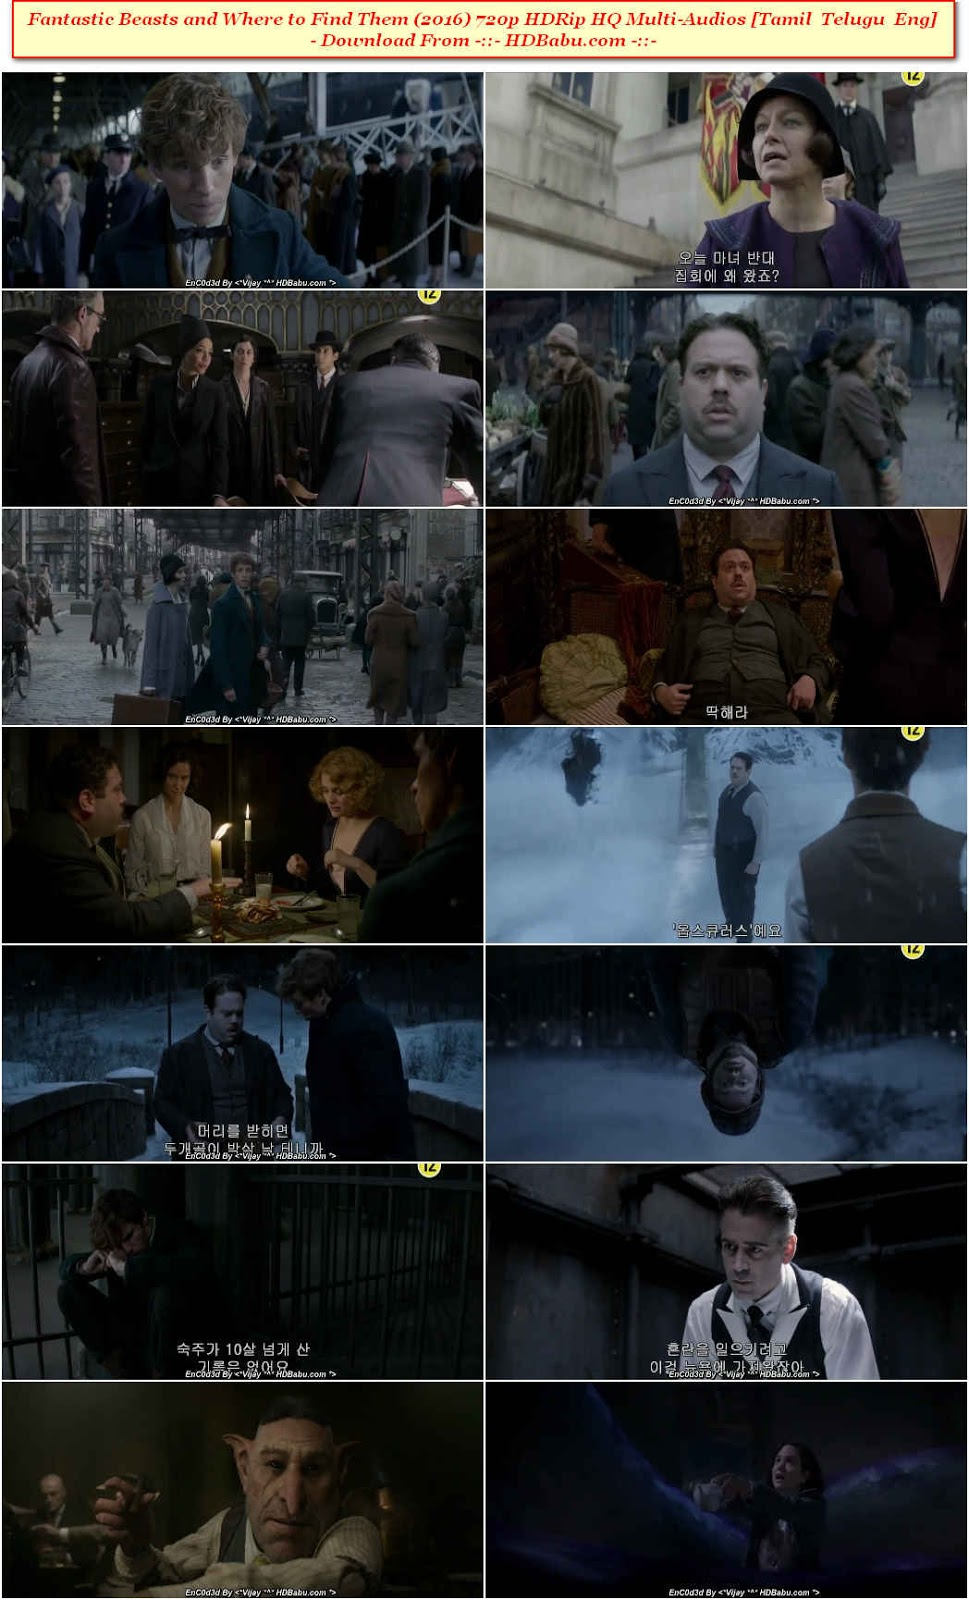 Fantastic Beasts and Where to Find Them Full Movie Download, Fantastic Beasts and Where to Find Them (2016) 720p HDRip HQ Multi-Audios [Tamil Telugu Eng] 1.2GB